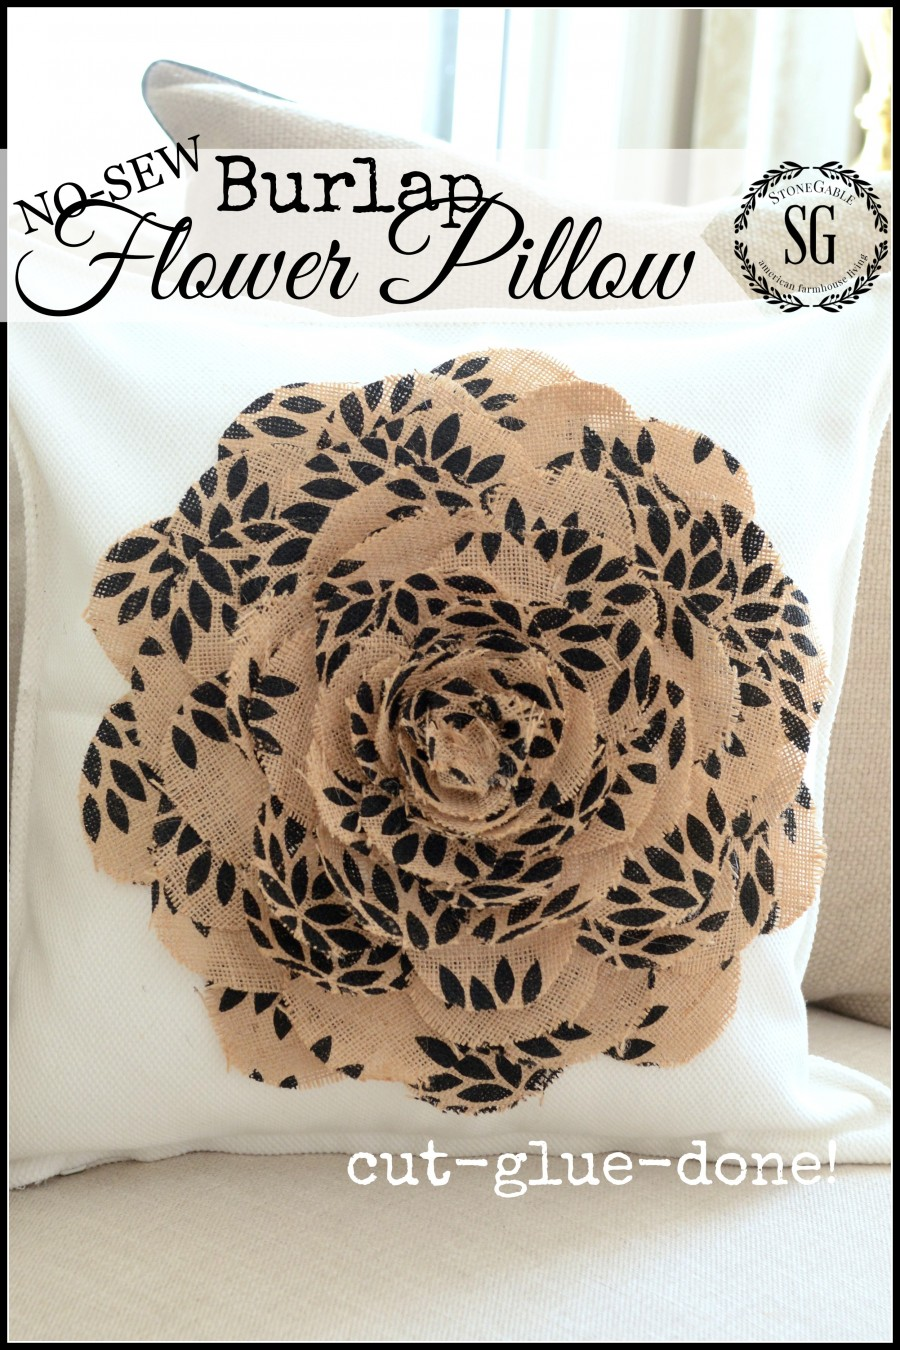 NO-SEW-BURLAP-FLOWER-PILLOW-so-easy-to-make-cut-glue-done-stonegableblog.com_